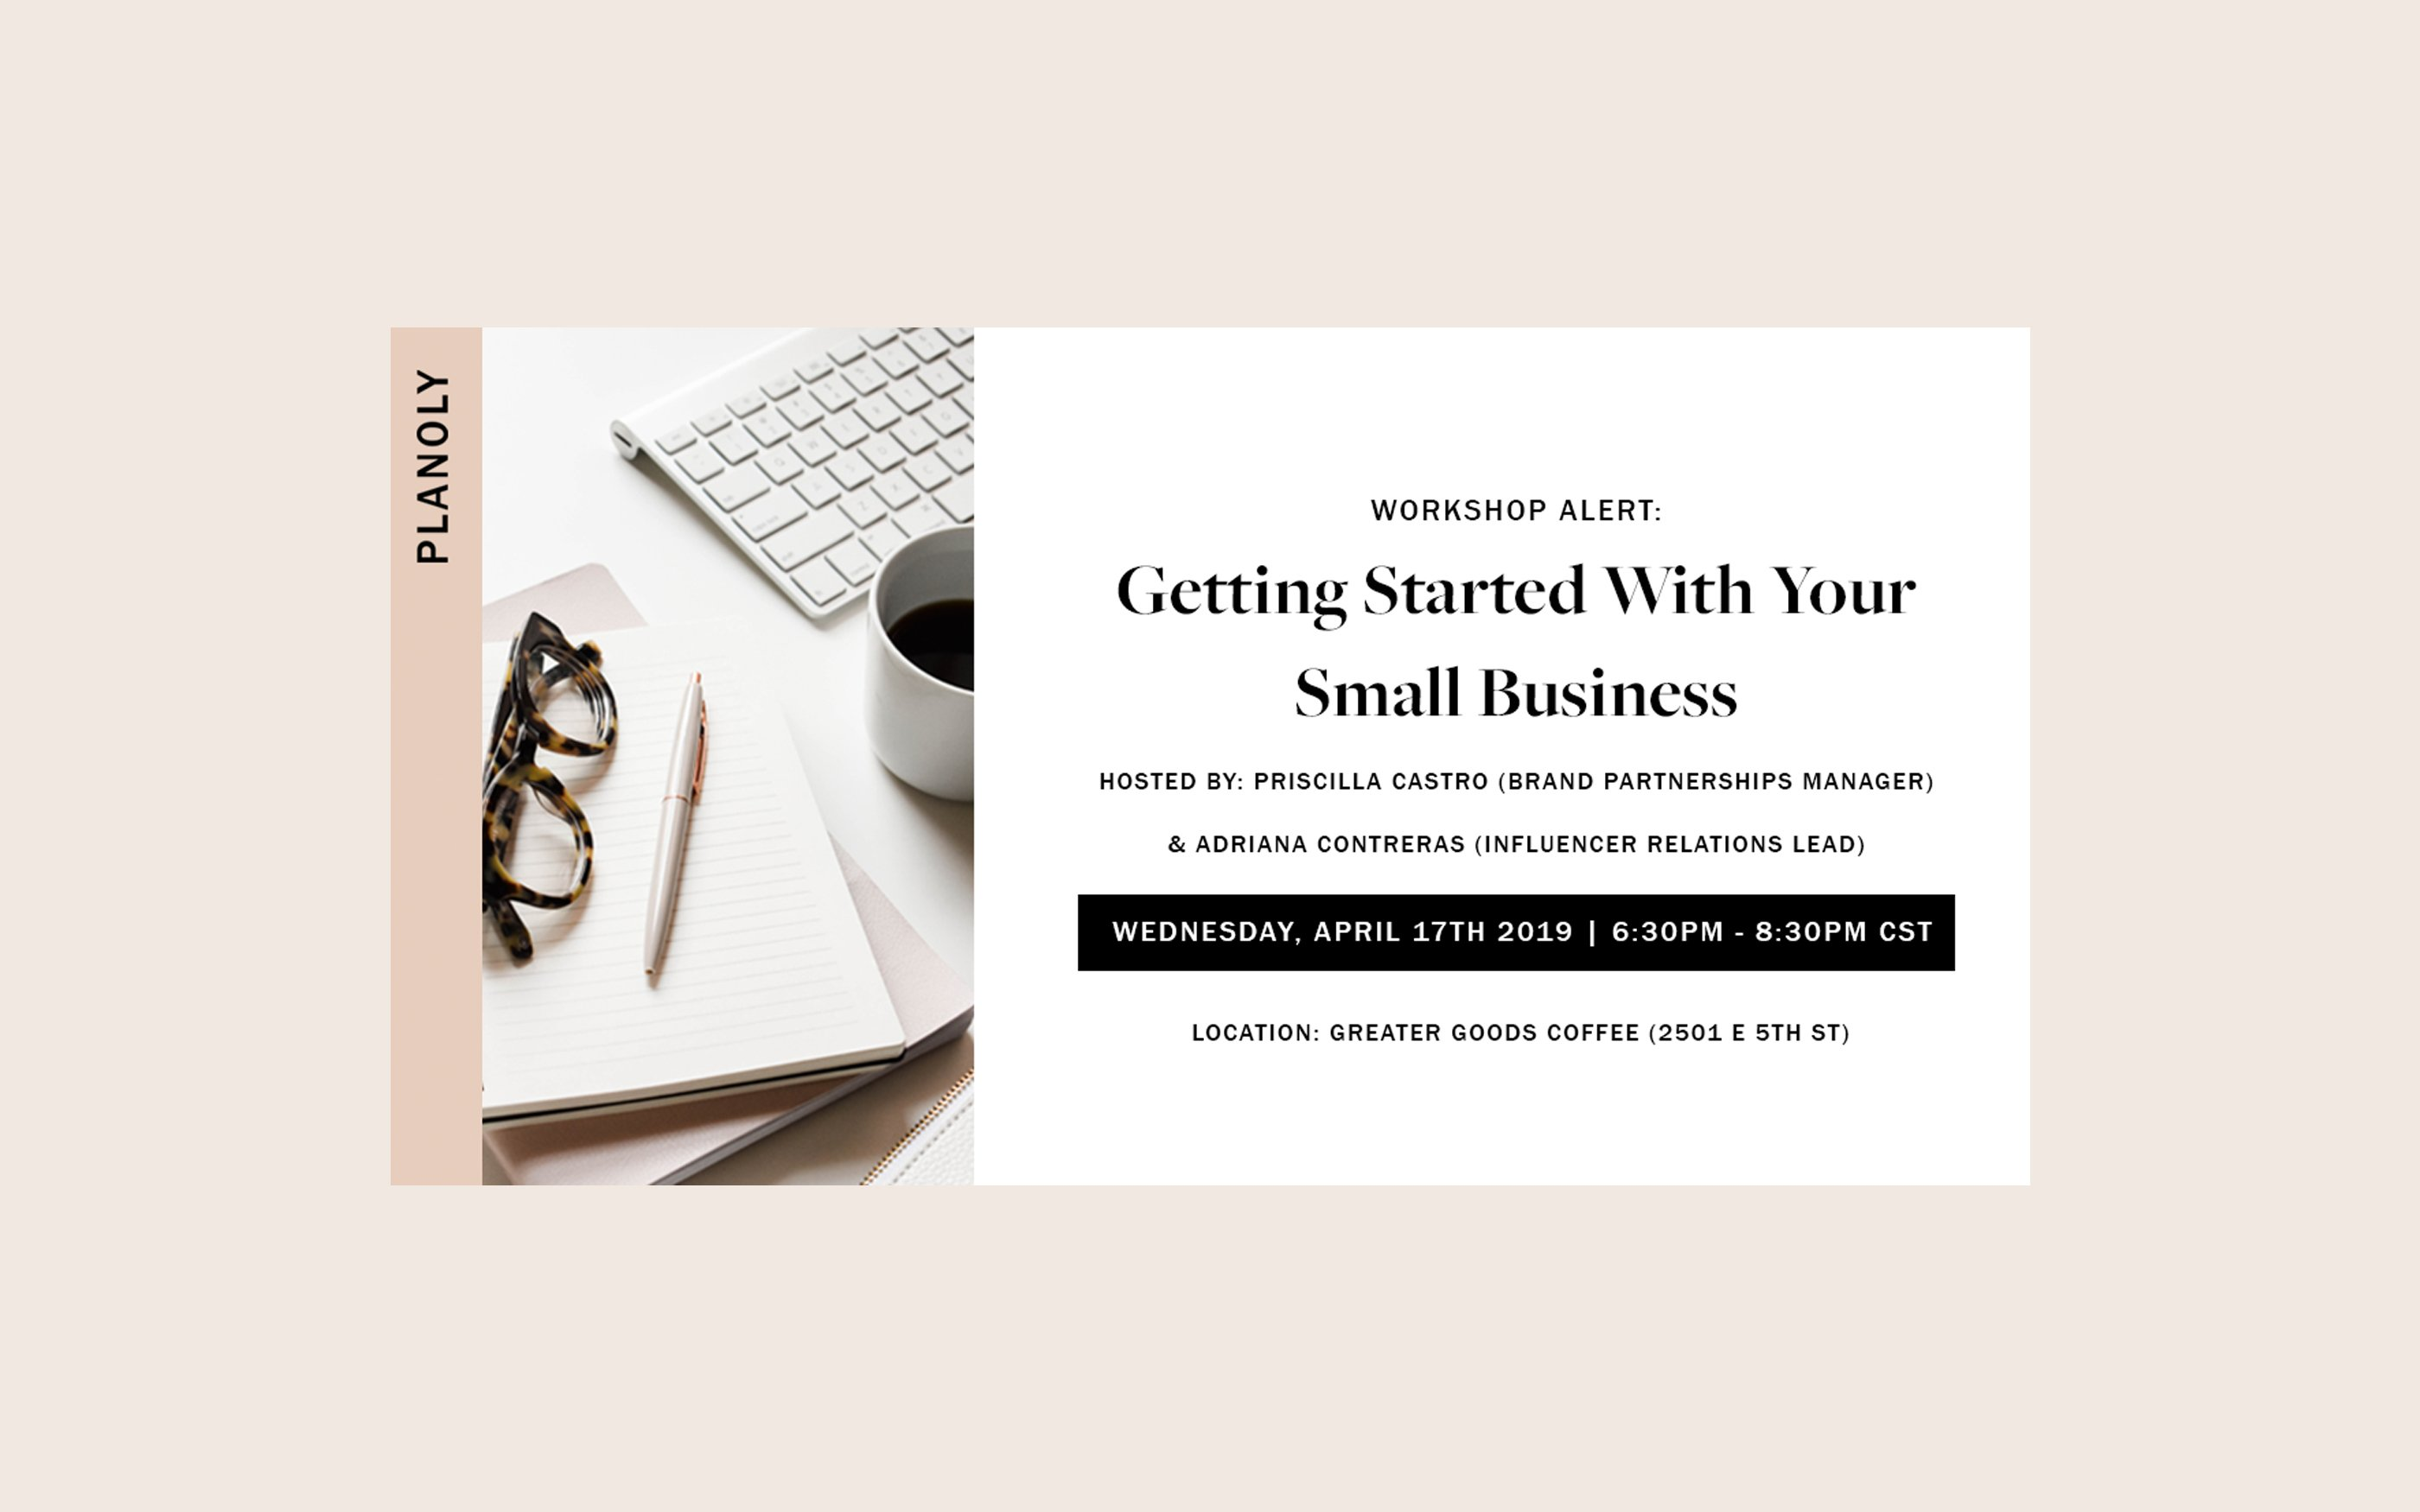 Getting Started With Your Small Business - a PLANOLY Workshop